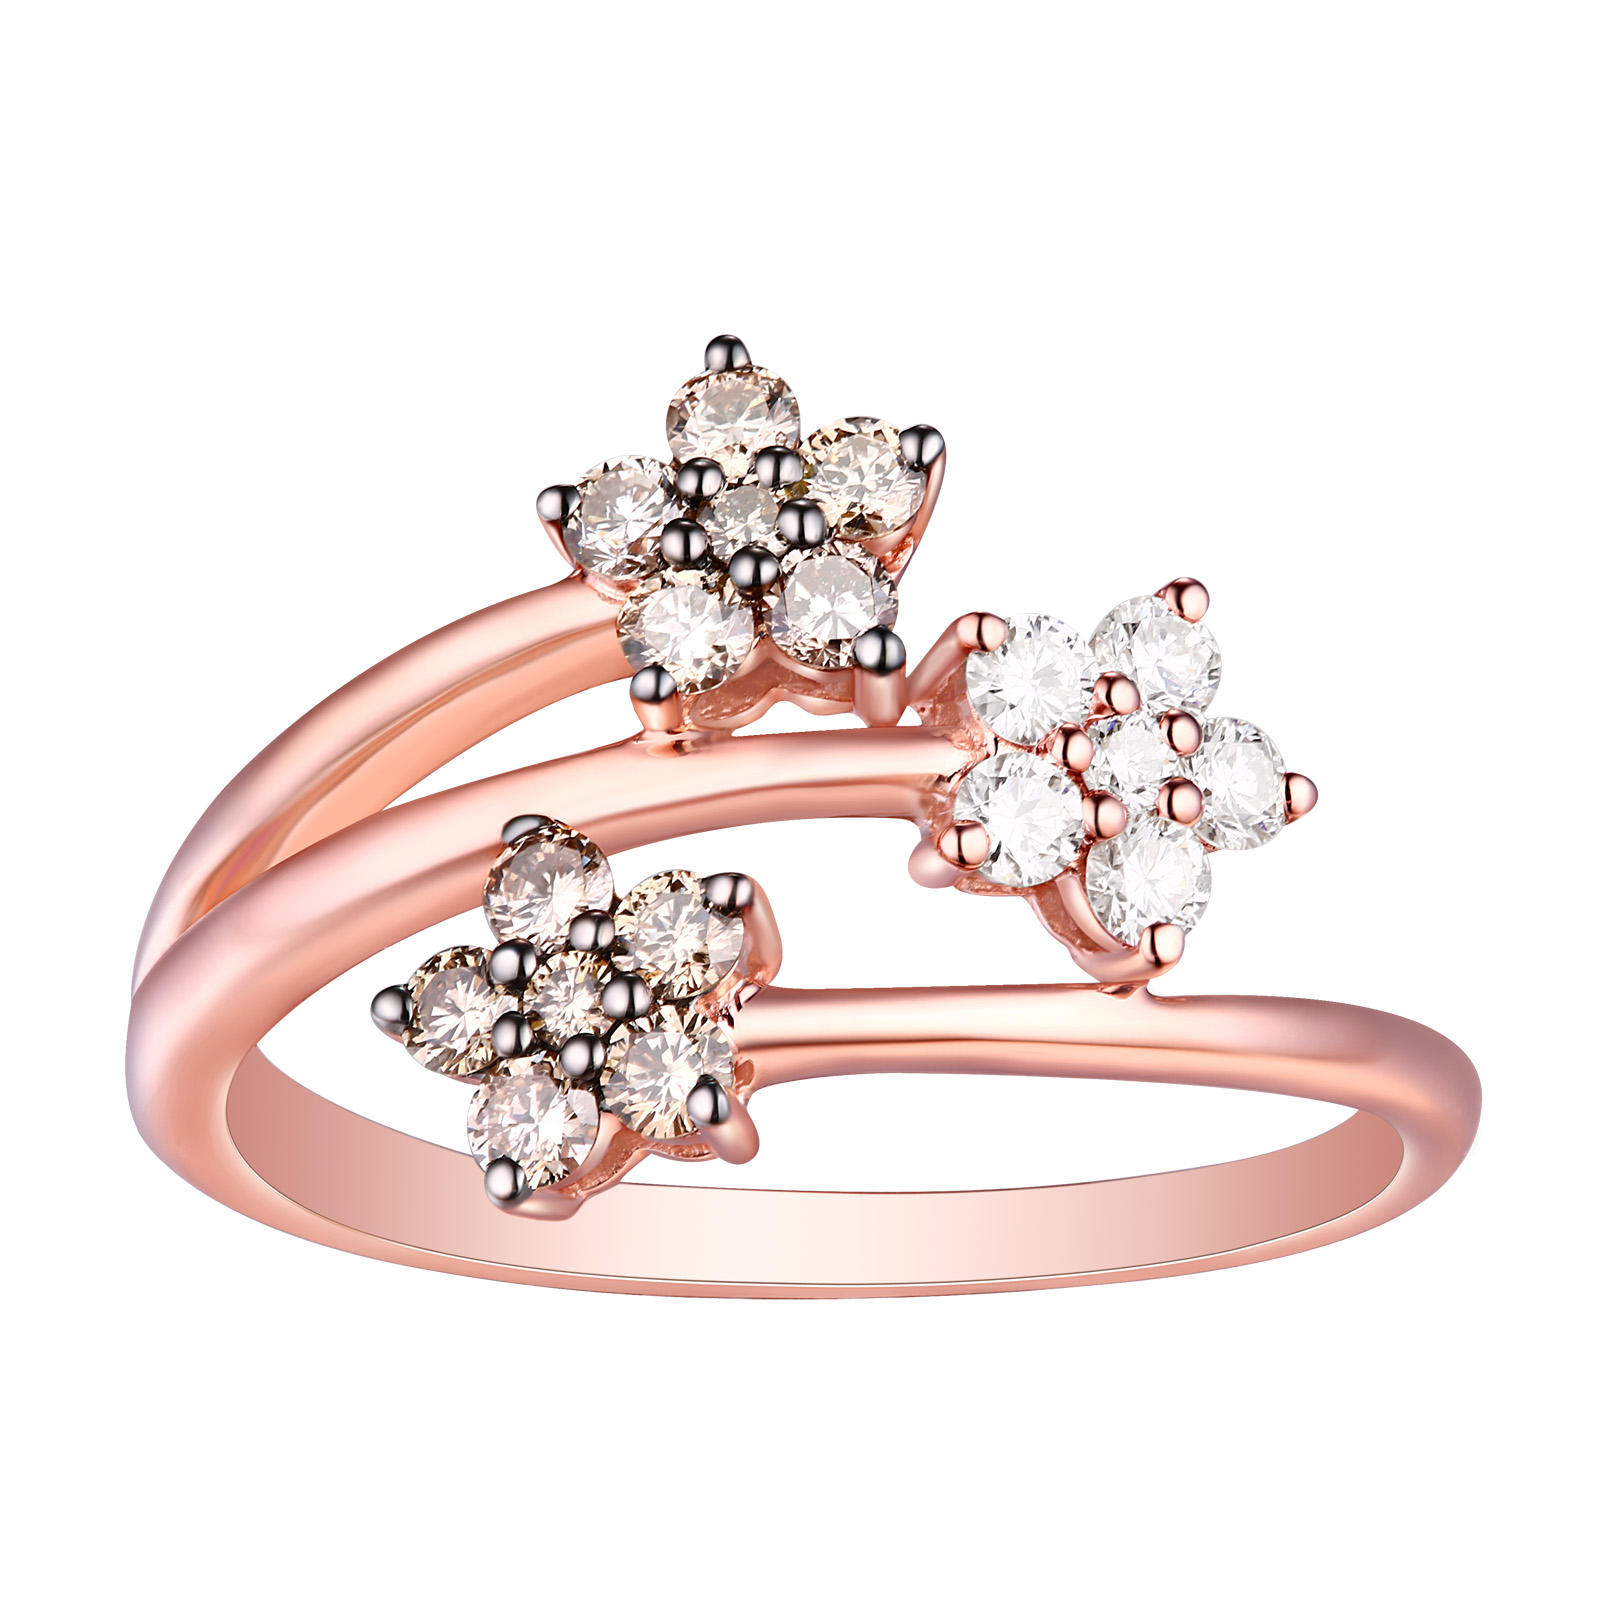 R25903WBR- 14K Rose Gold Diamond Ring, 0.54 TCW